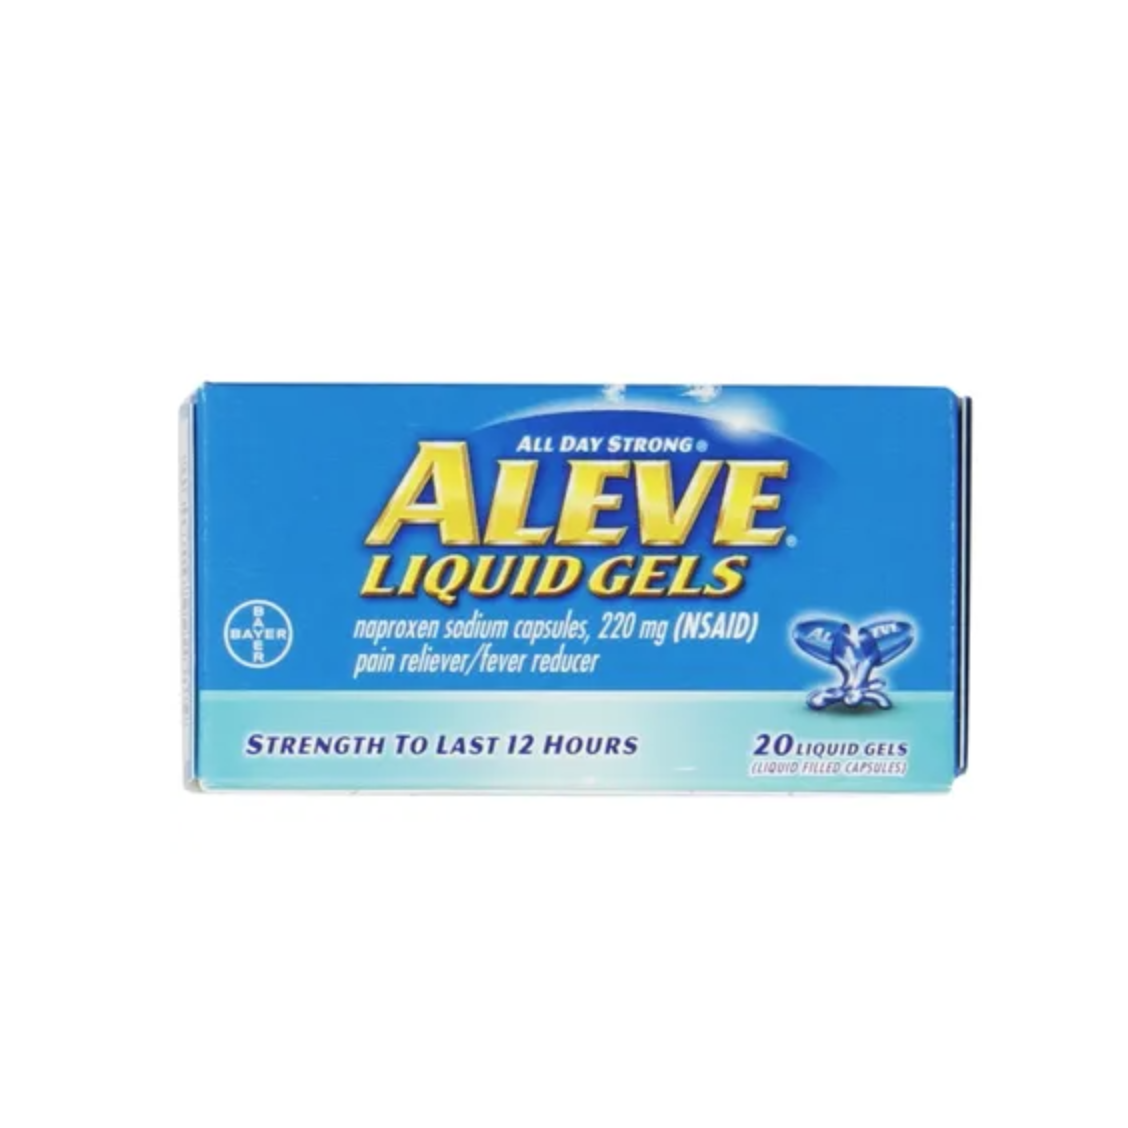 Image For Aleve Liquid Gelcaps, 220mg